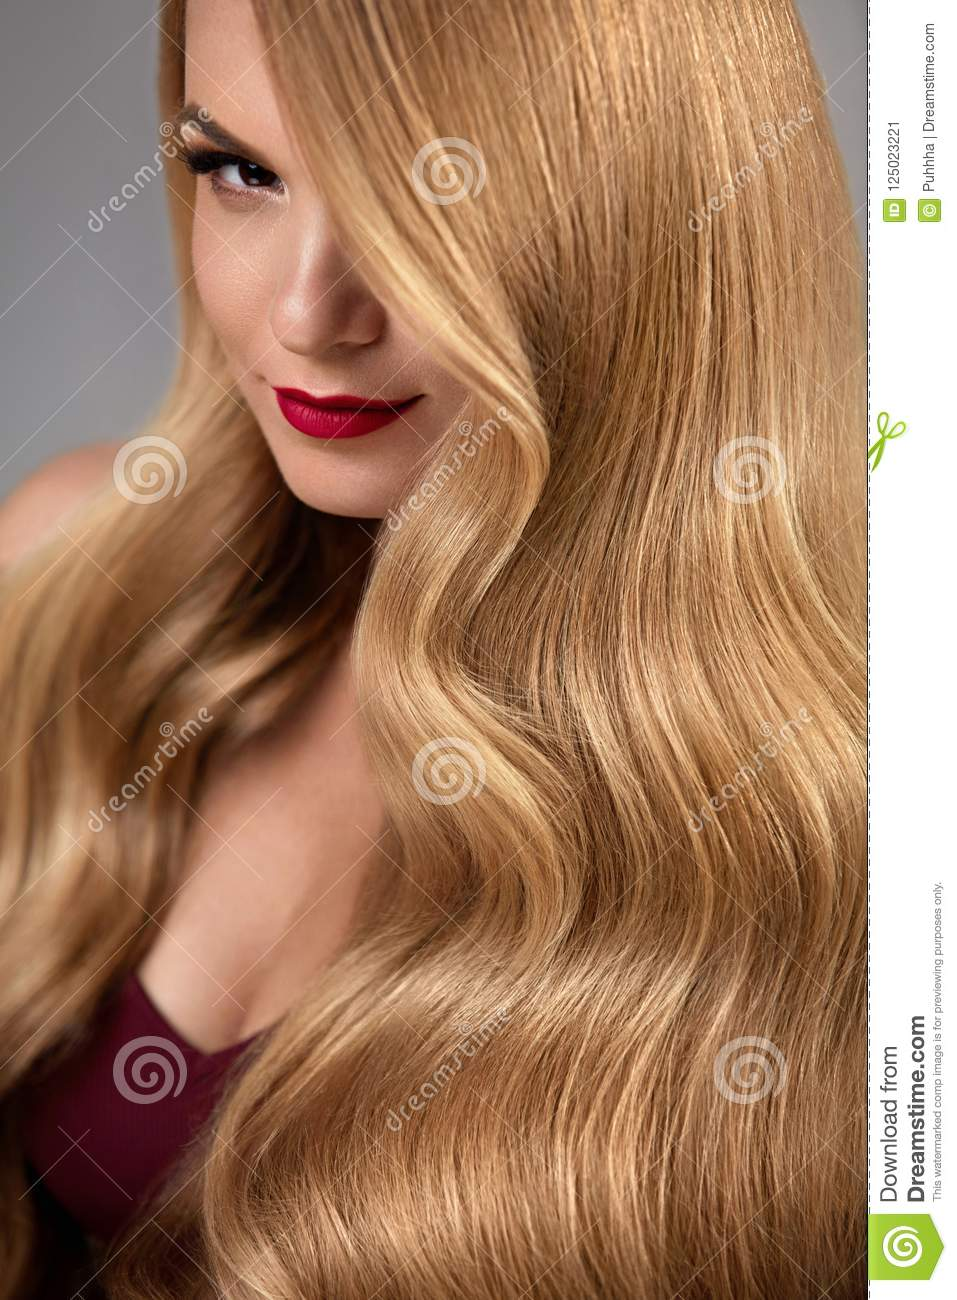 Hair Style Beautiful Woman With Healthy Wavy Long Blonde Hair Stock